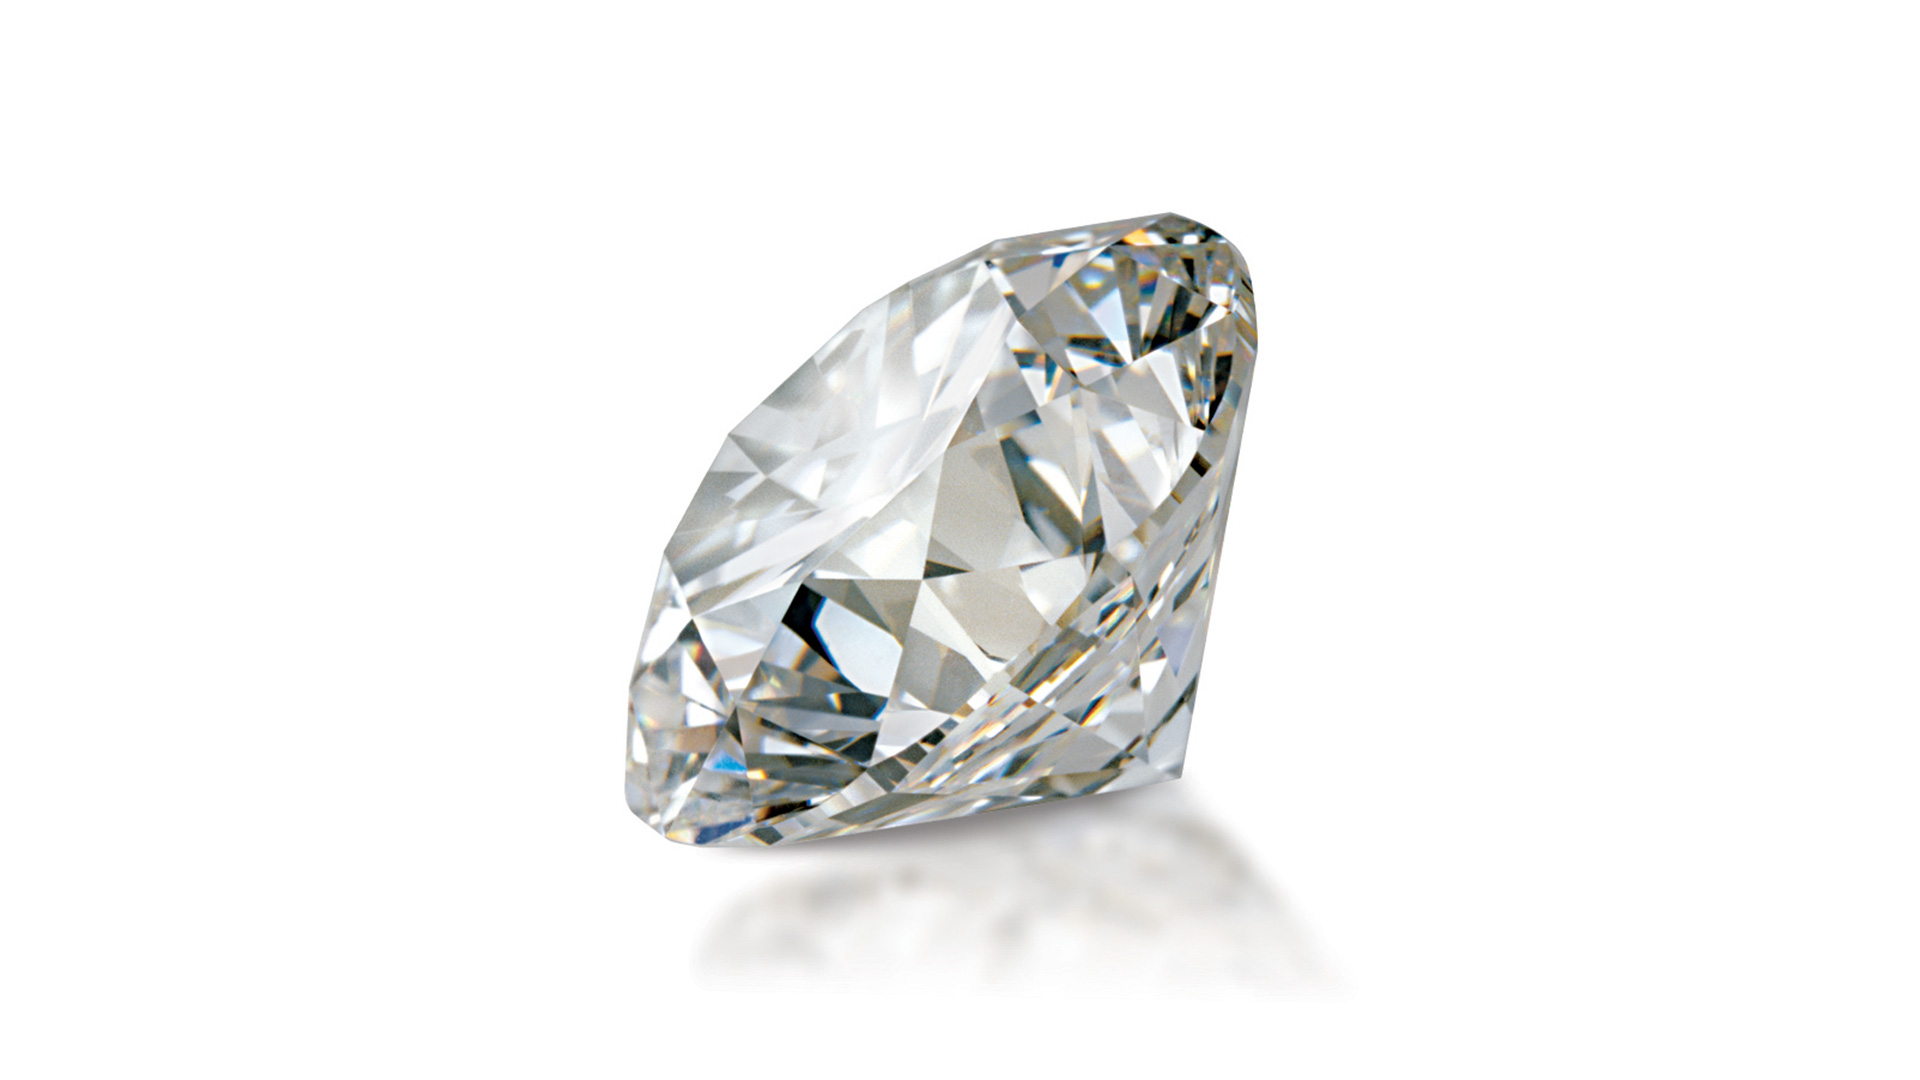 Carat Diamond Value